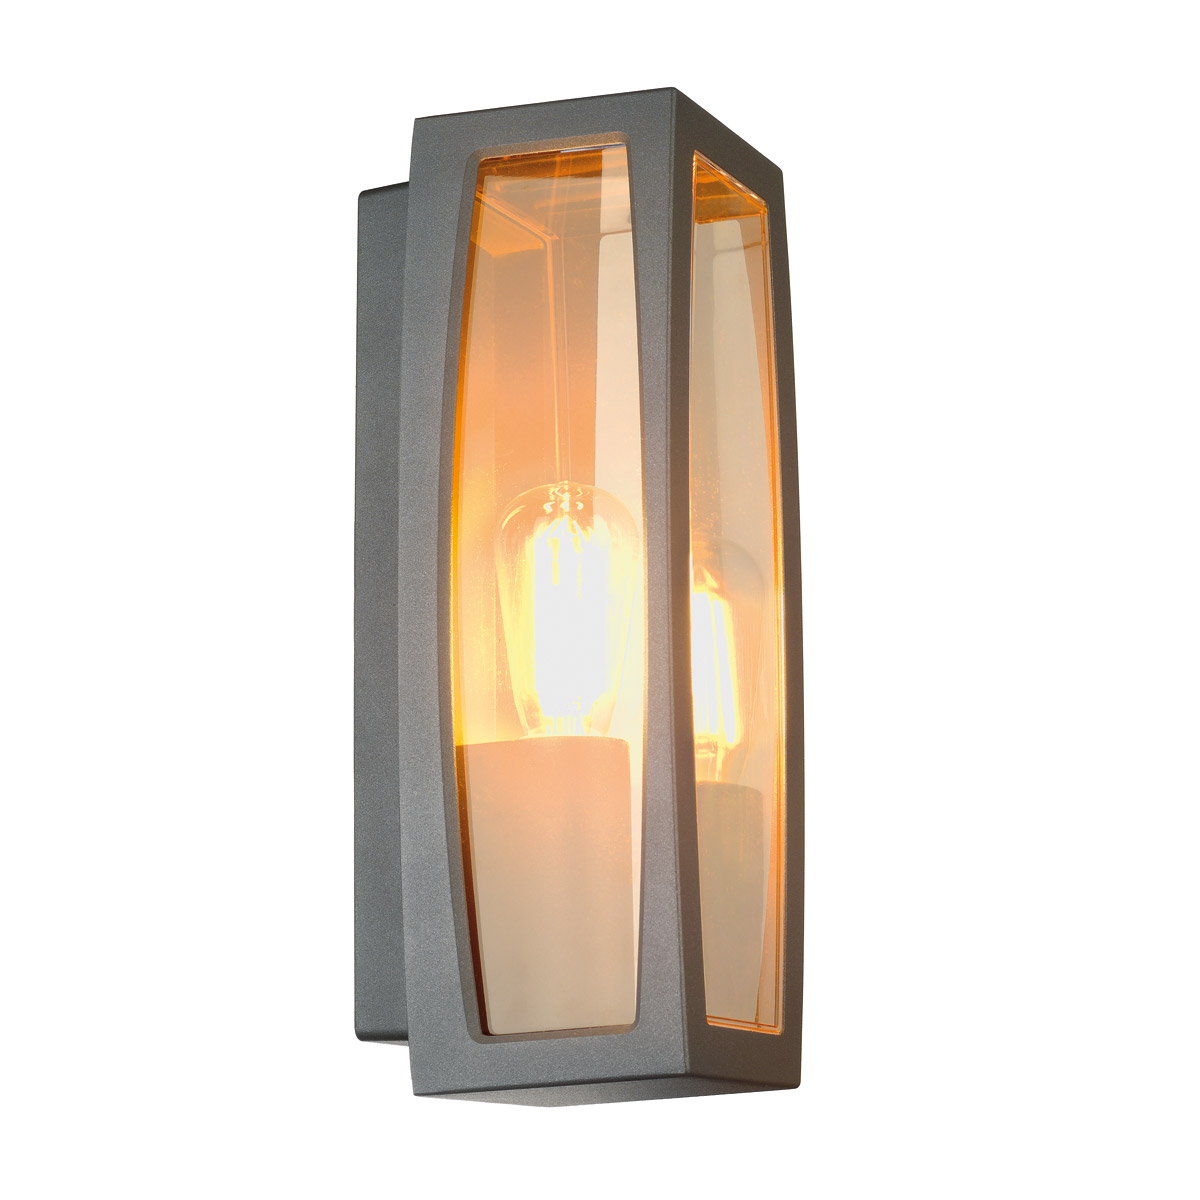 MERIDIAN BOX 2 outdoor luminaire, E27, max. 25W, anthracite